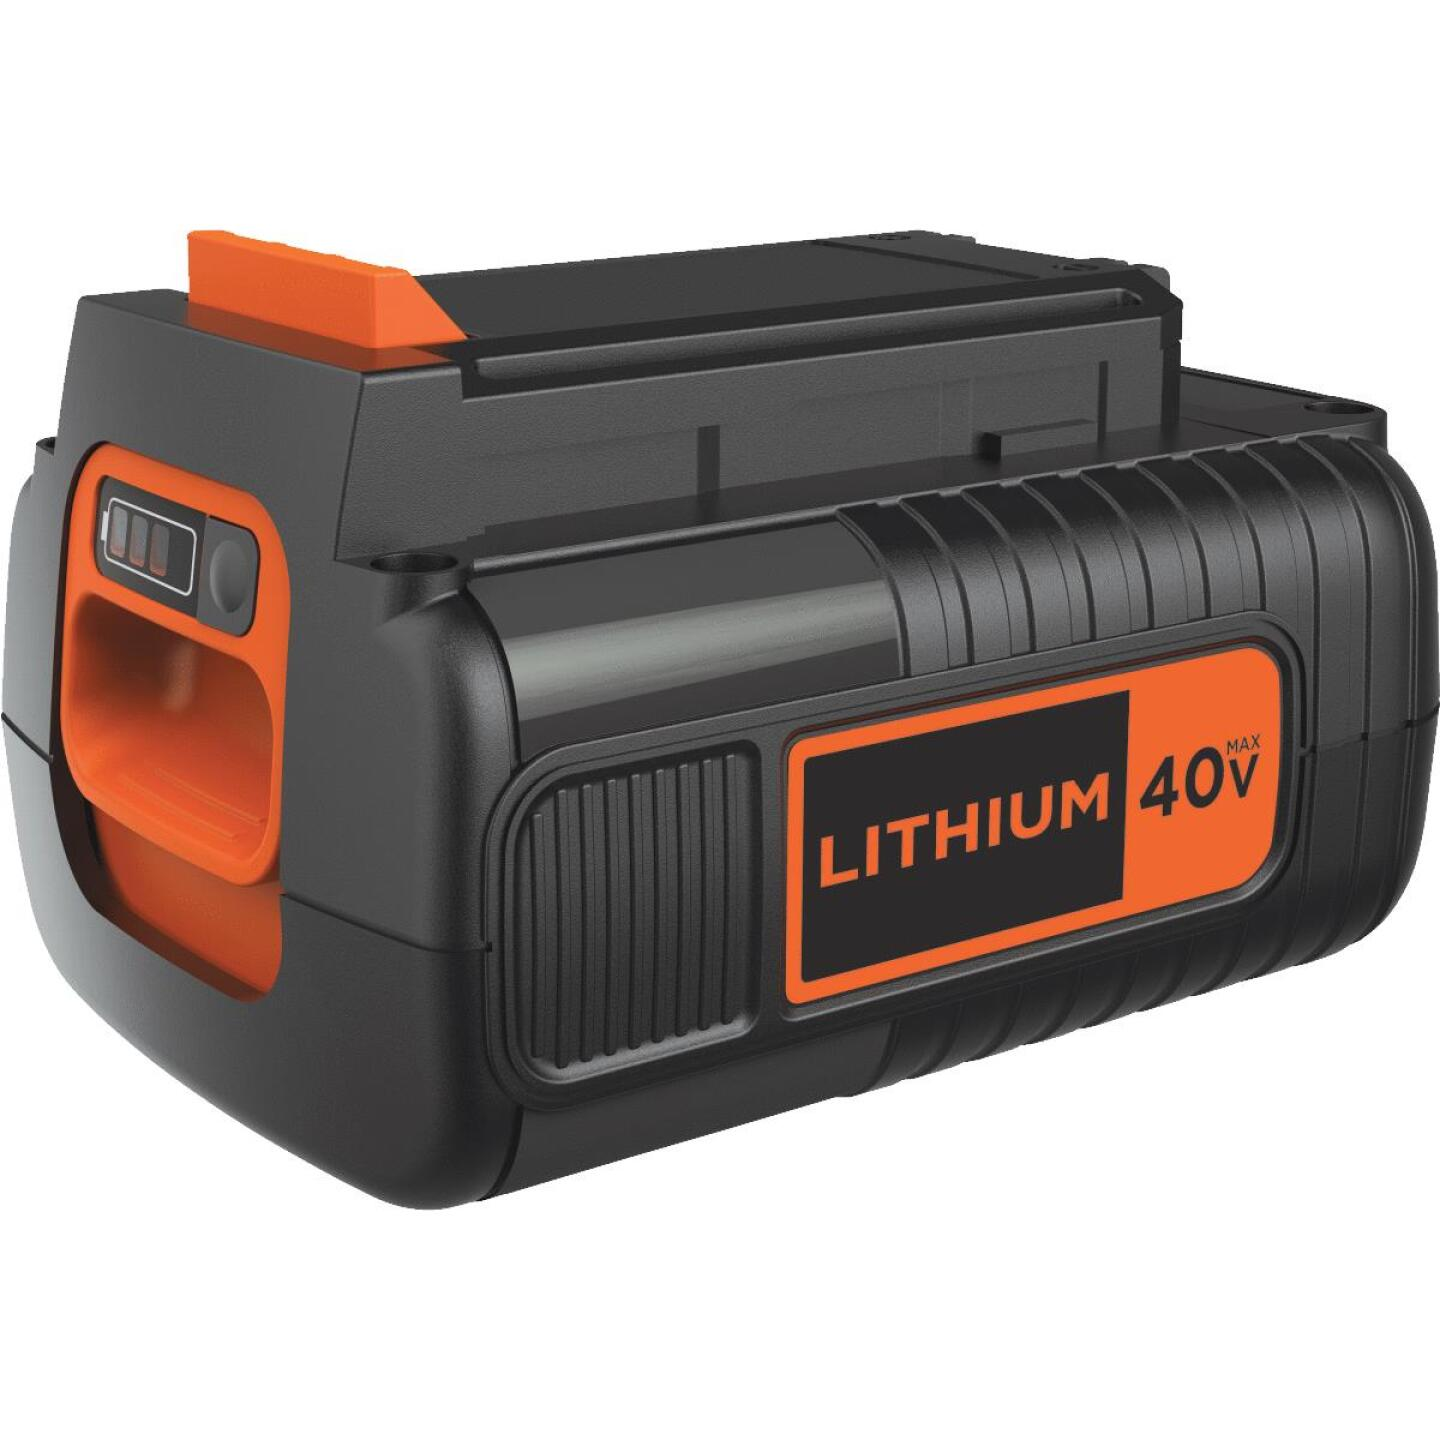 Black & Decker 40V Power Tool Replacement Battery Image 1